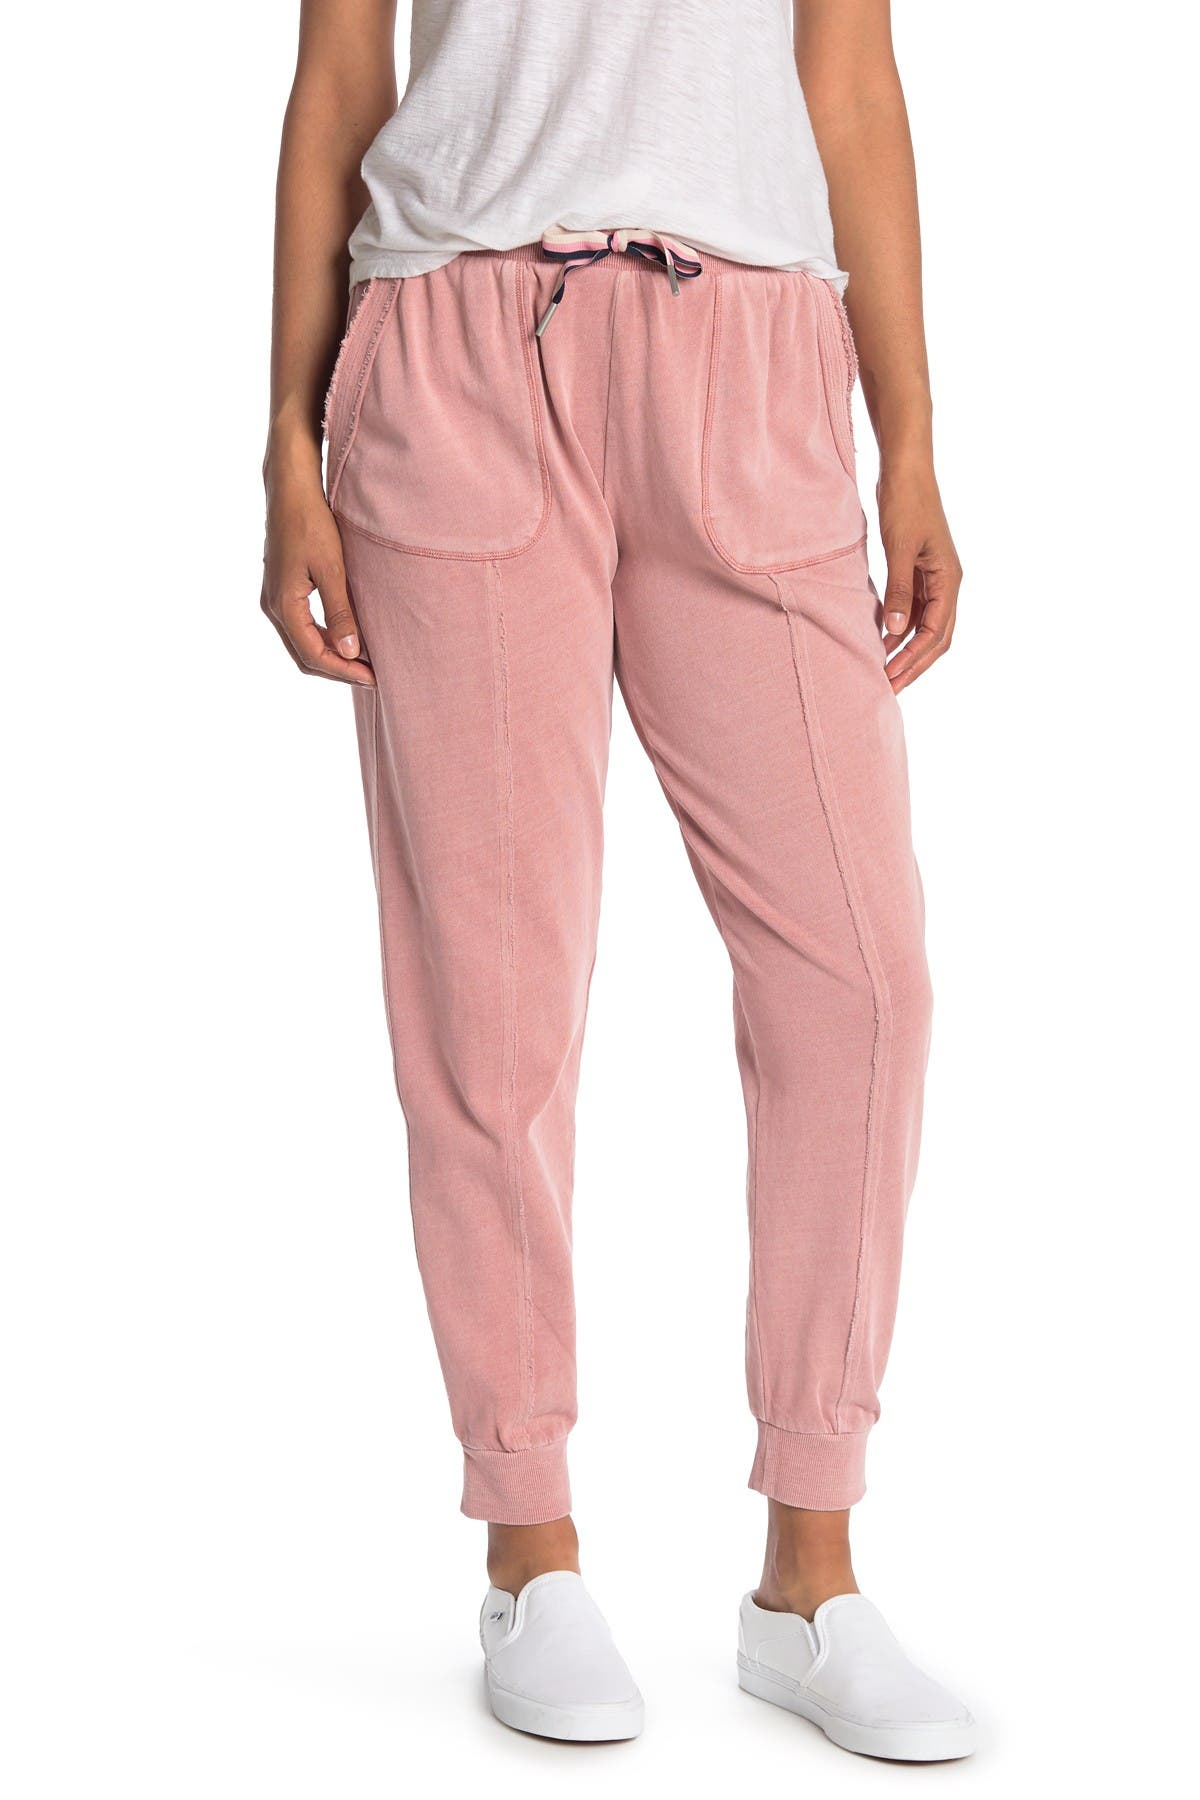 Image of North and Co Jenna Cropped Sweatpants